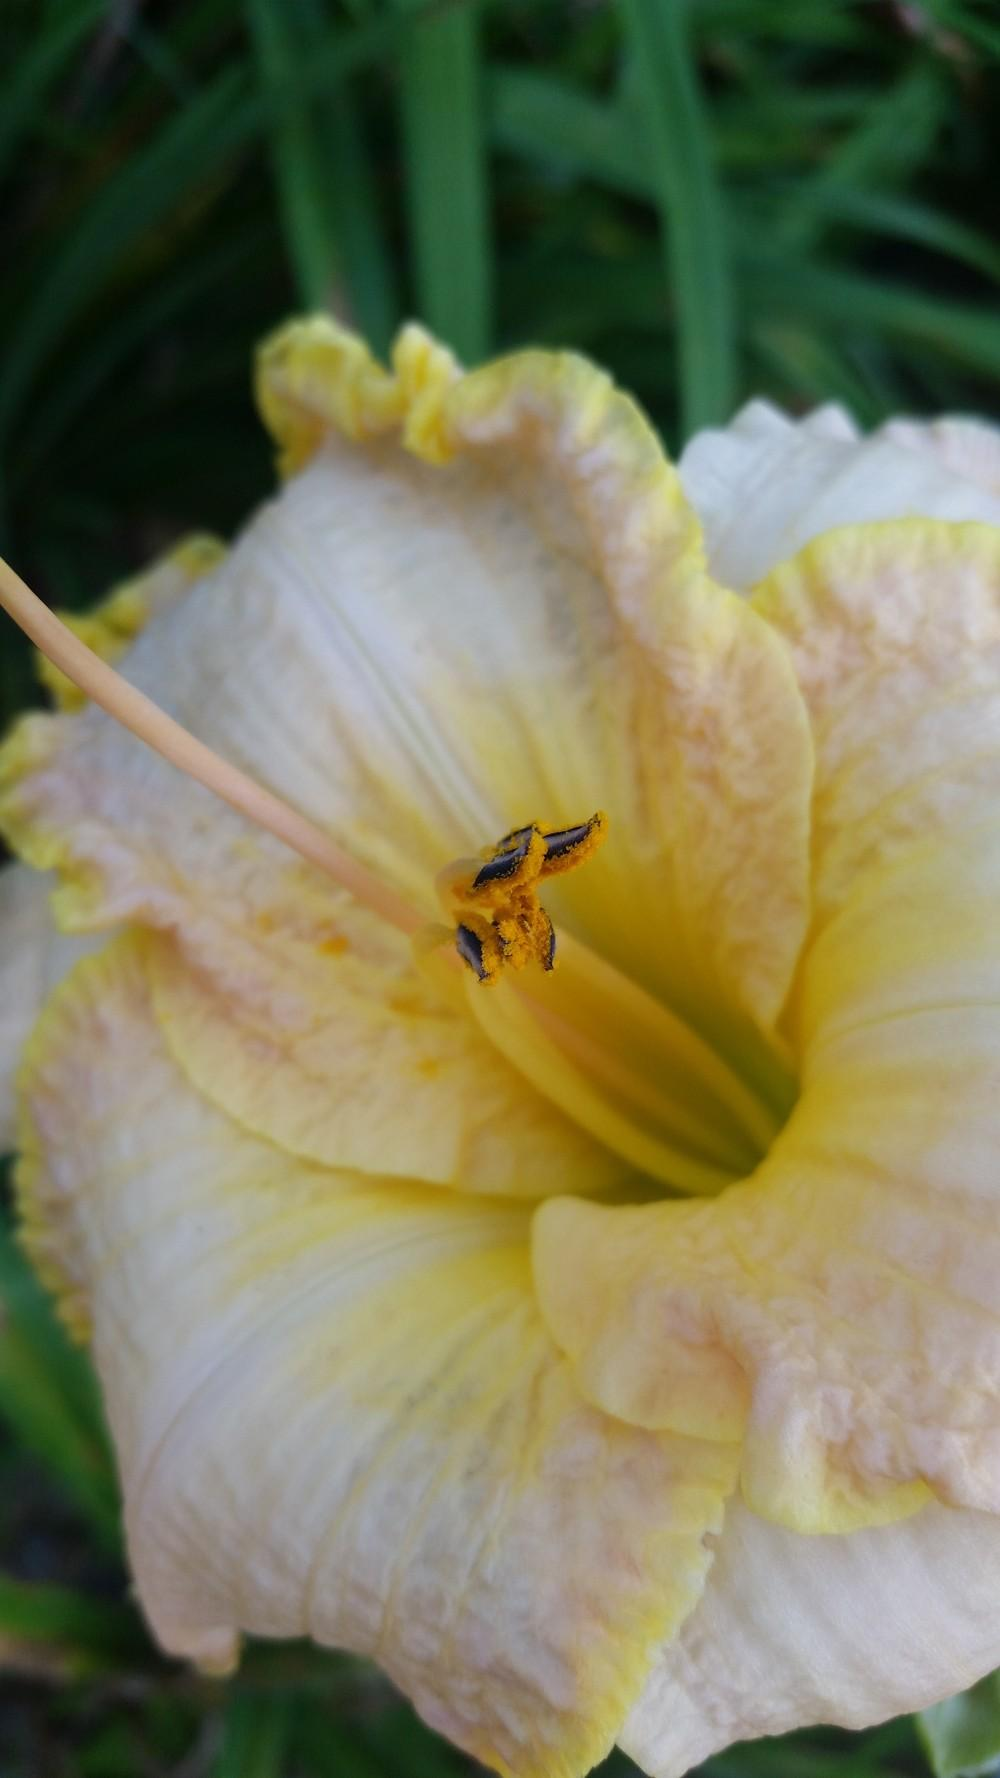 Photo of Daylily (Hemerocallis 'Spacecoast Cool Deal') uploaded by value4dollars